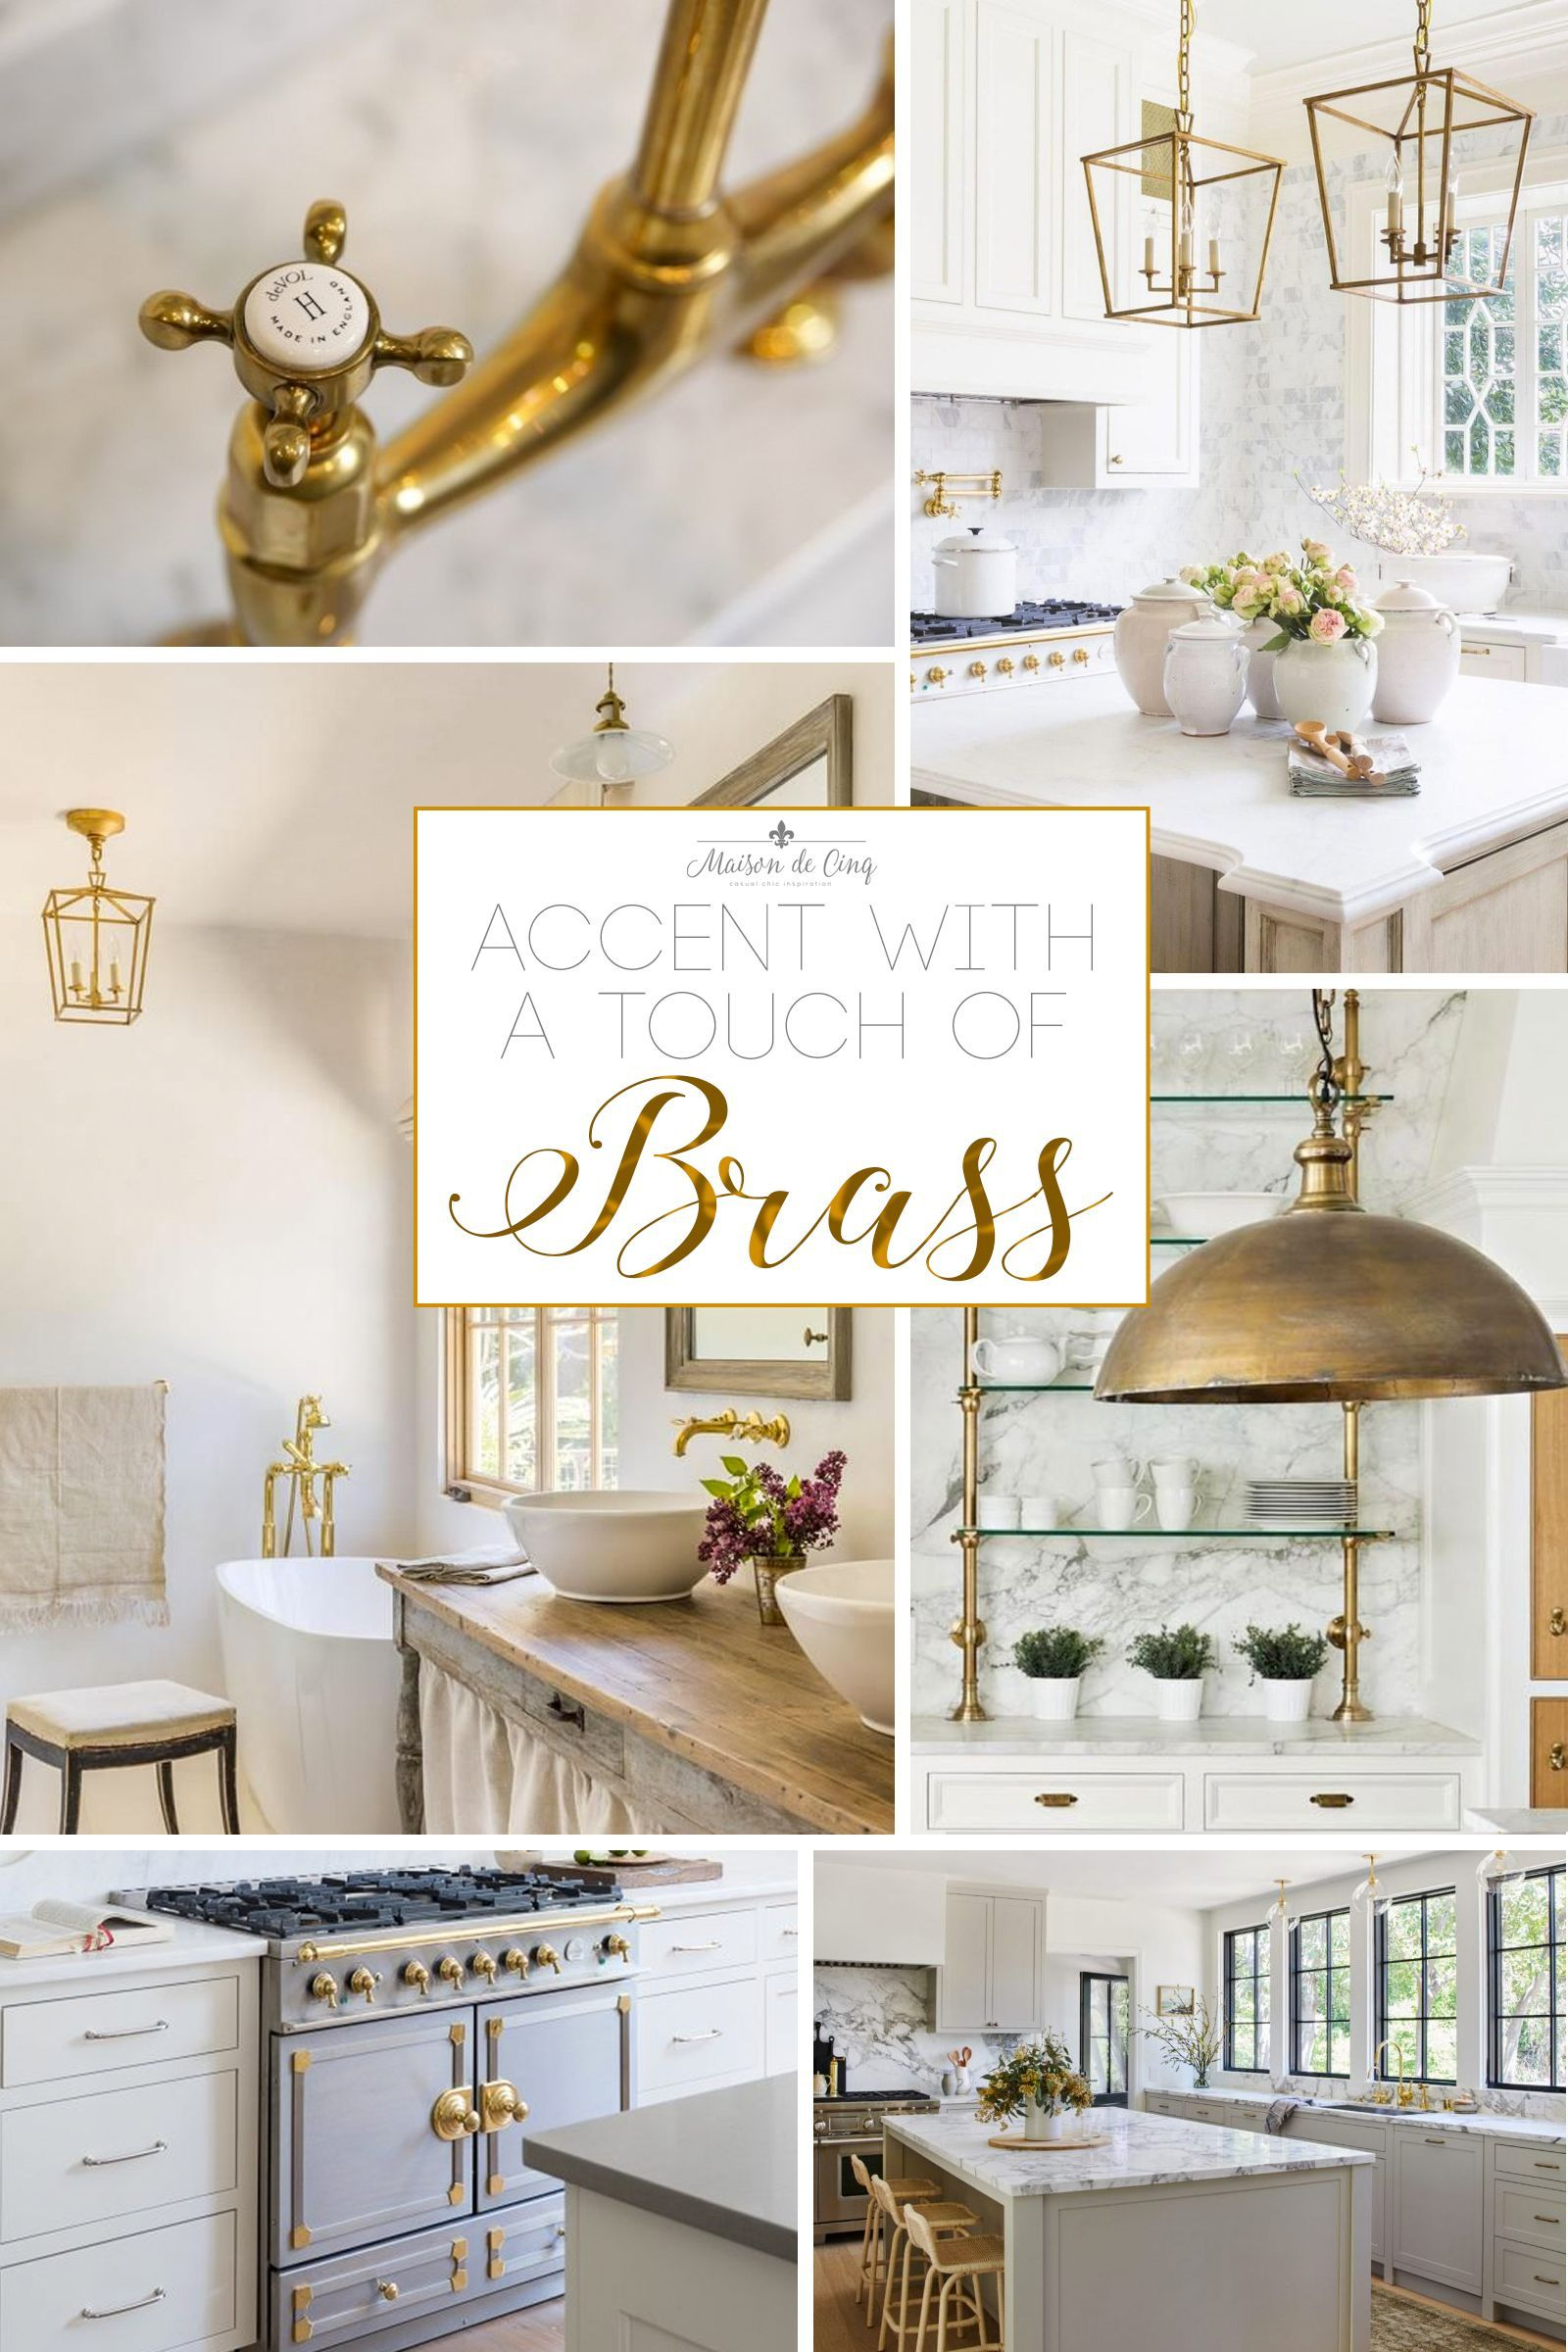 Big Kitchen Decor The Brass Hardware Trend is Going Strong! Brass or gold hardware adds charm and warmth to any space!--->#maisondecinq #brasshardware #kitchenhardware #bathhardware #kitchenlighting #bathroomlighting #hardwaretrends #brasshardwaretrend #goldhardware #warmmetals #warmmetaltrend #interiordecorating #interiordecor #interiordesign #designtrends. Big Kitchen Decor  The Brass Hardware Trend is Going Strong! Brass or gold hardware adds charm and warmth to any space!--->#maisondecinq #b